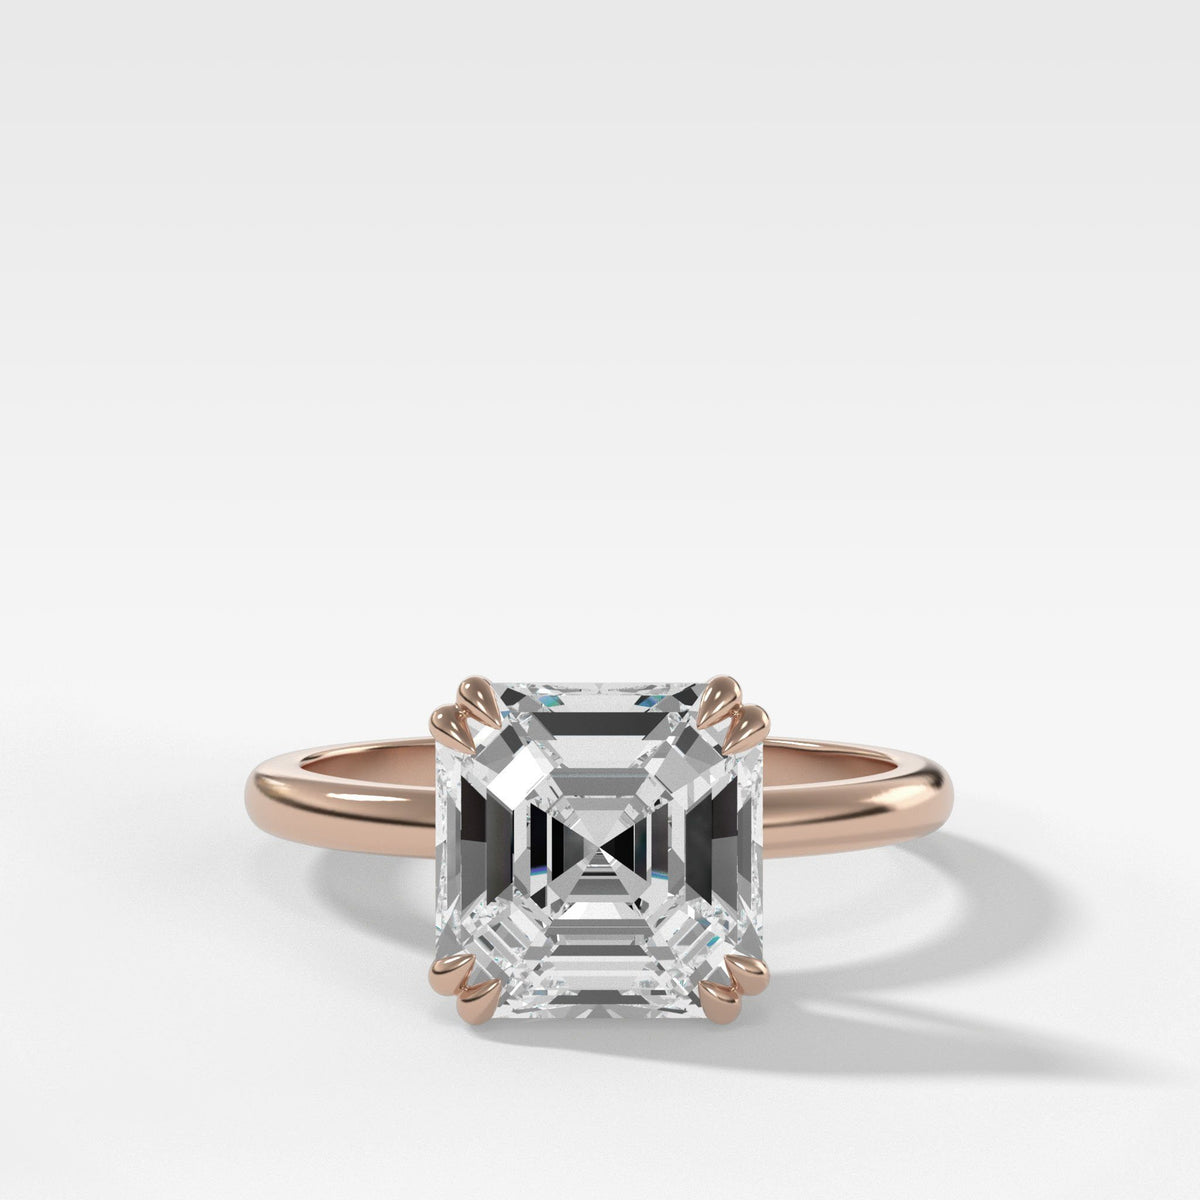 Signature Cathedral Solitaire With Asscher Cut Engagement Good Stone Inc Rose Gold 14k